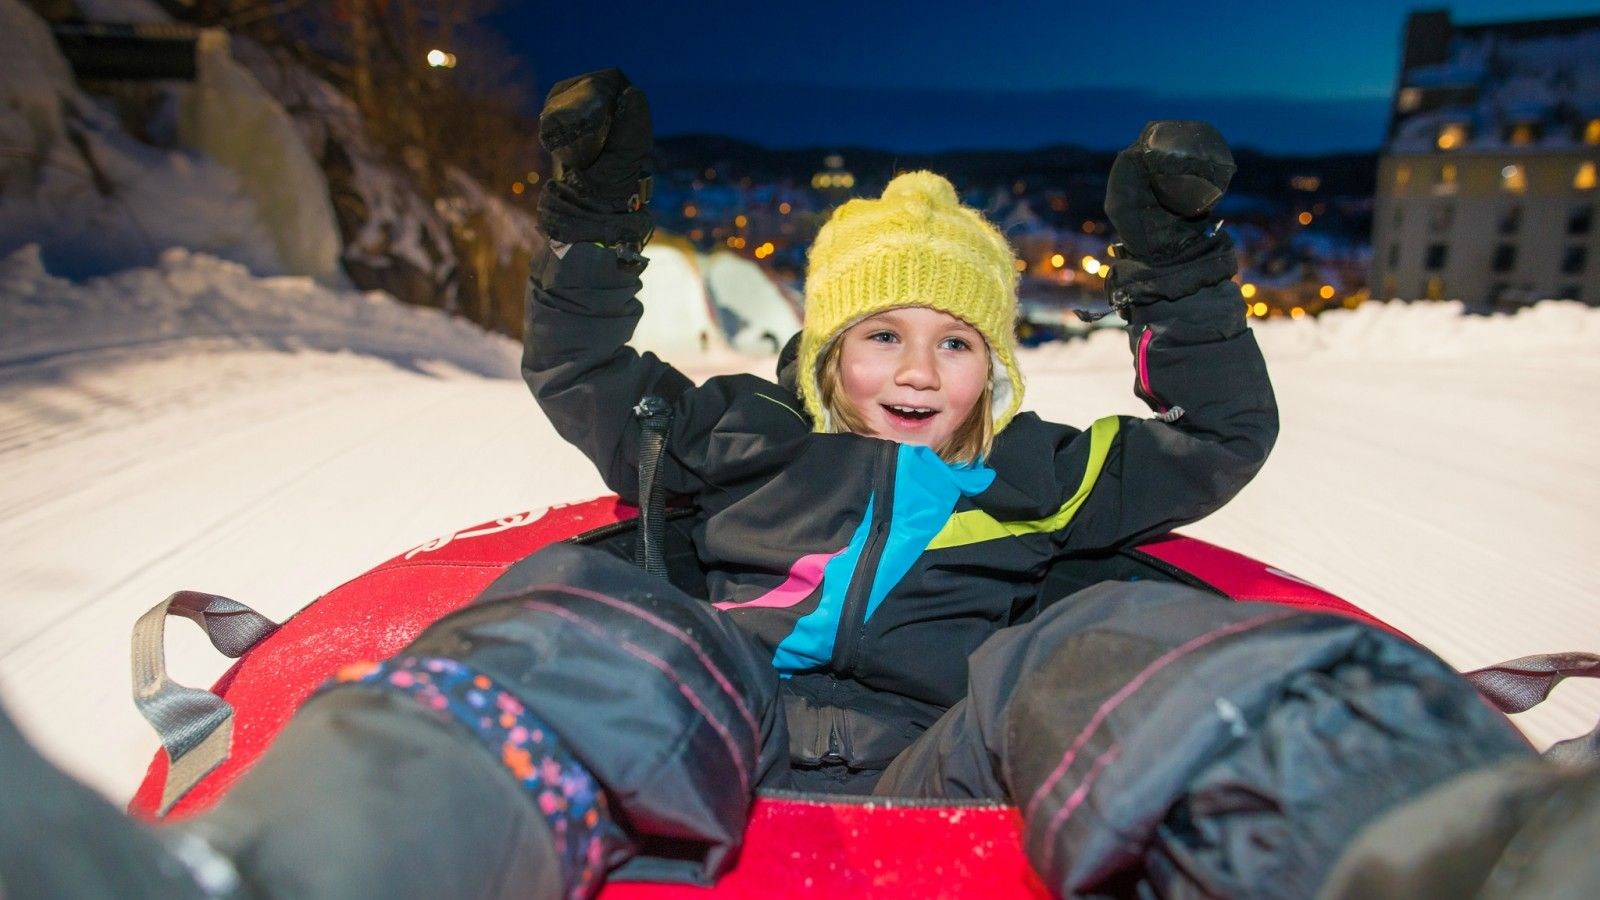 Things to do at Tremblant - Tubing